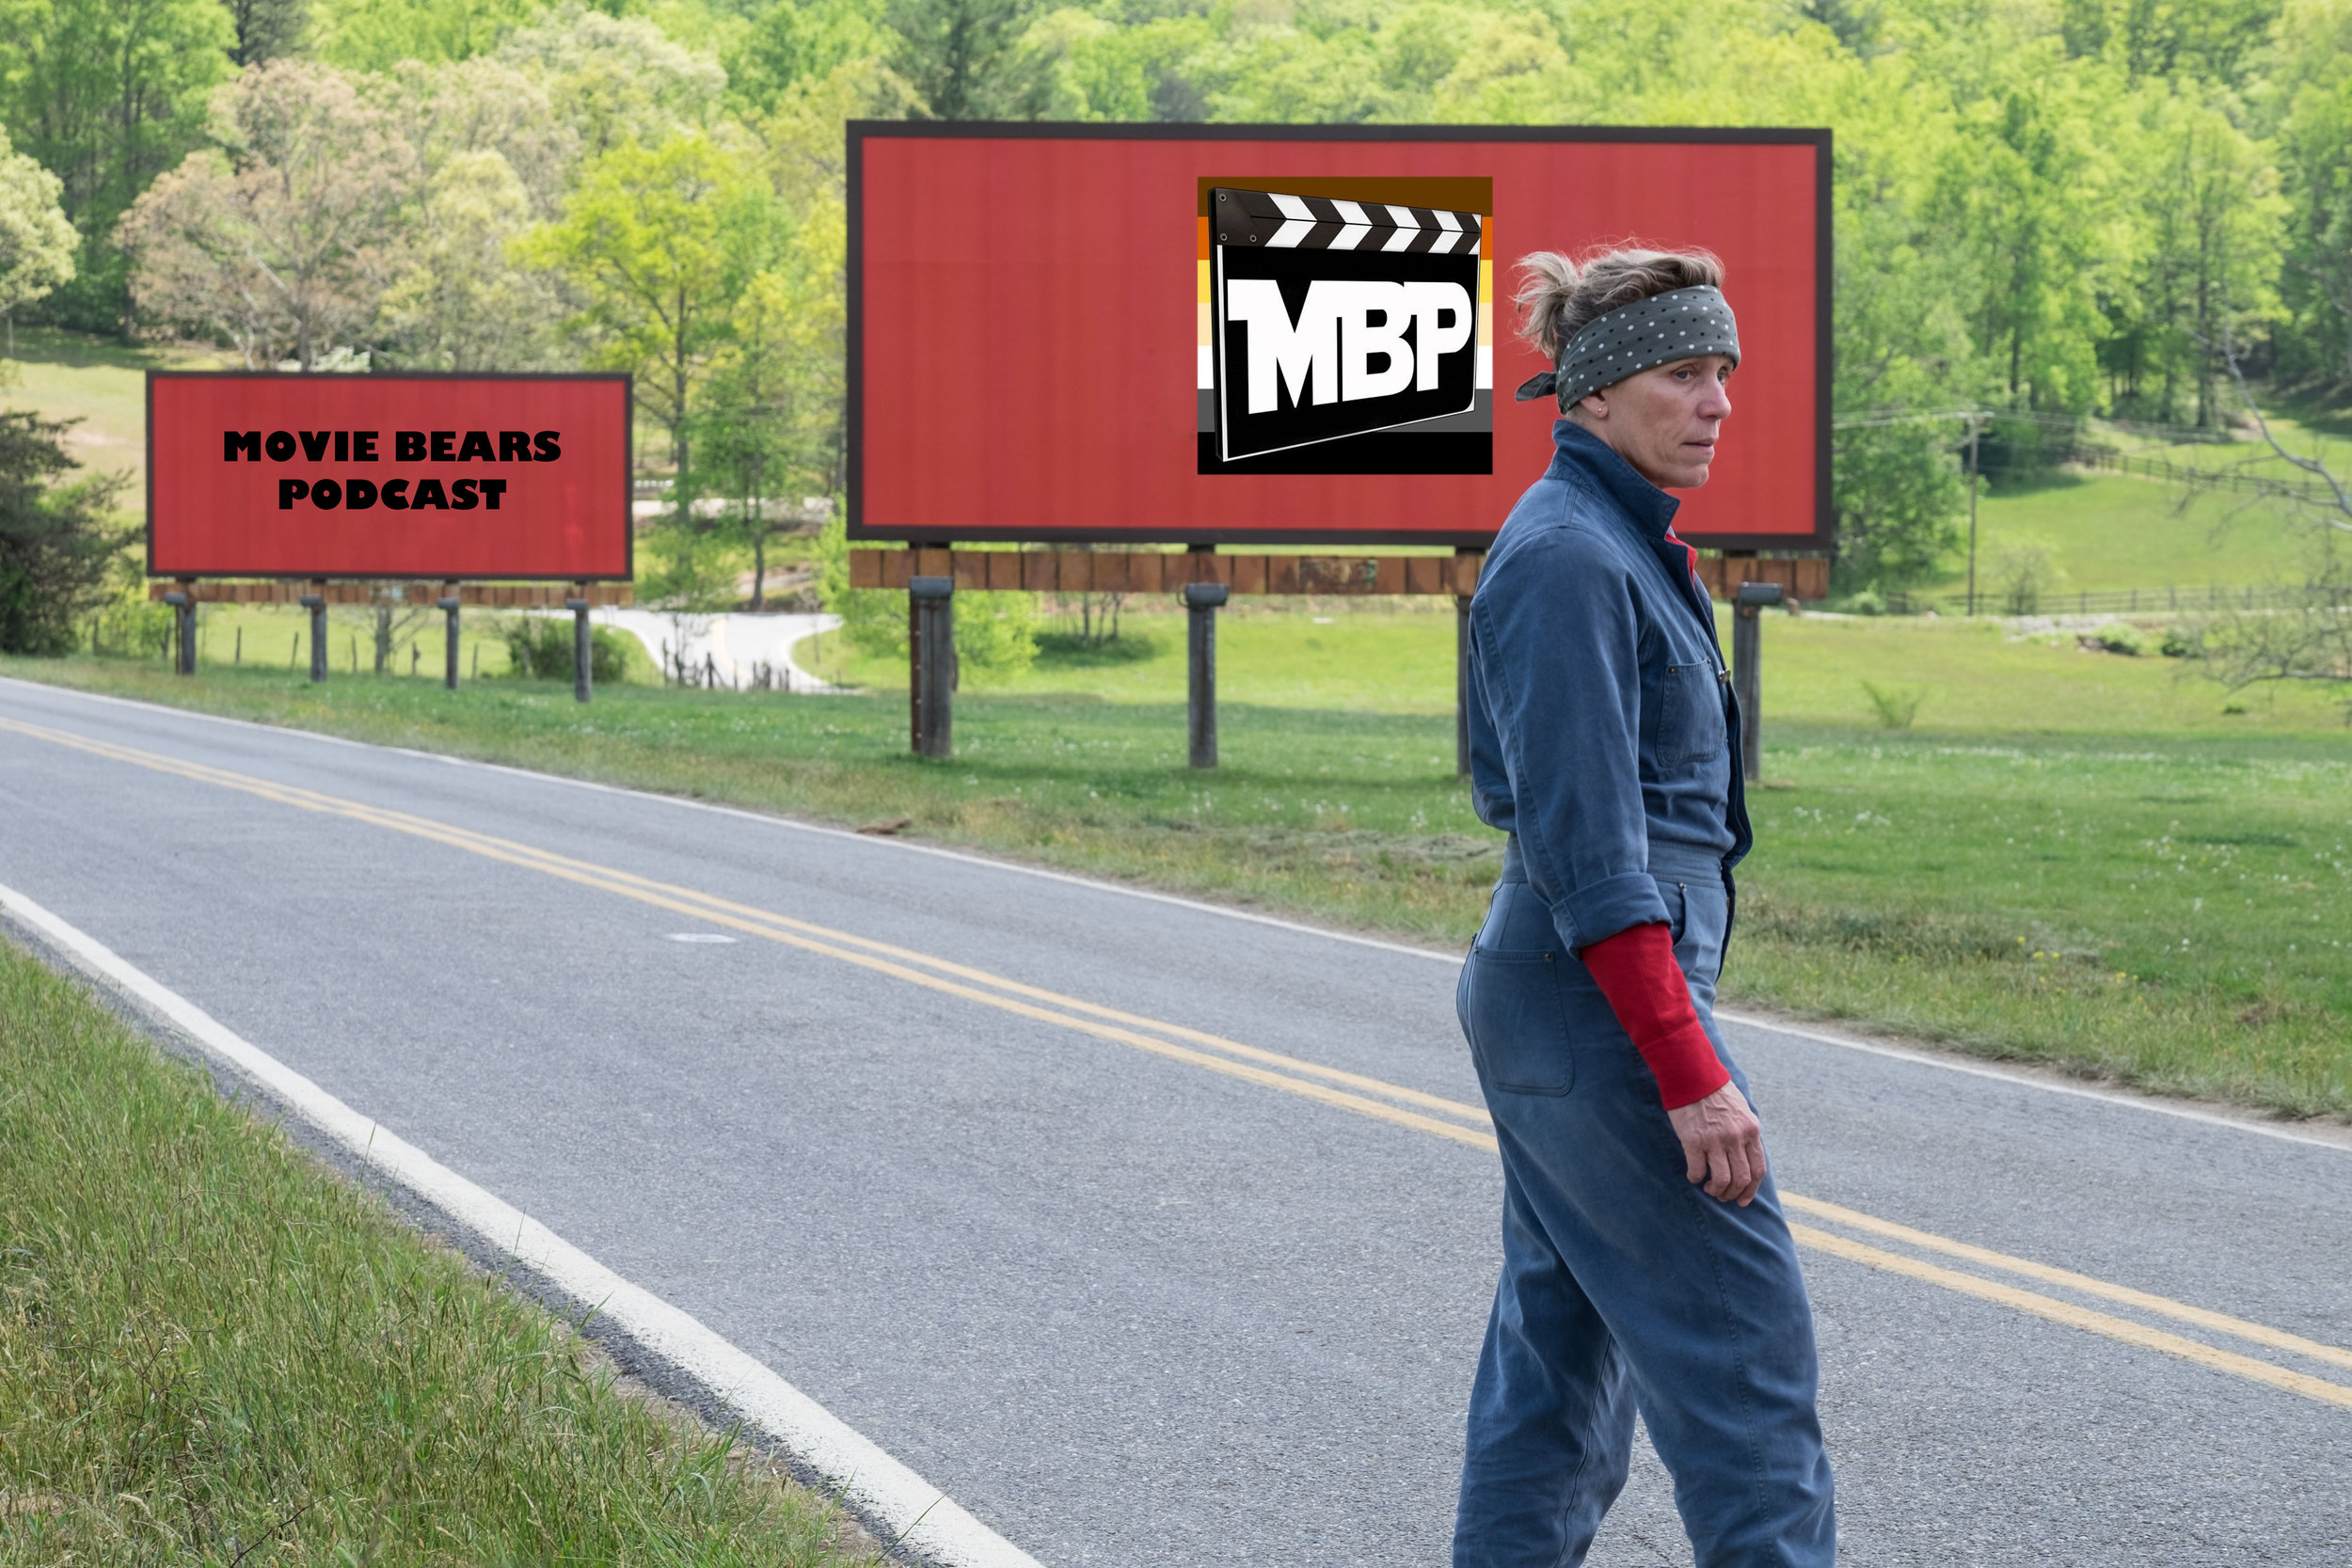 MBP e262 - 'Three Billboards Outside Ebbing, Missouri' (12/1/17)    We're big fans of Martin McDonagh on the Movie Bears Podcast. But does his latest film, 'Three Billboards Outside Ebbing, Missouri,' do justice to its weighty and timely topic? Tune in to find out!